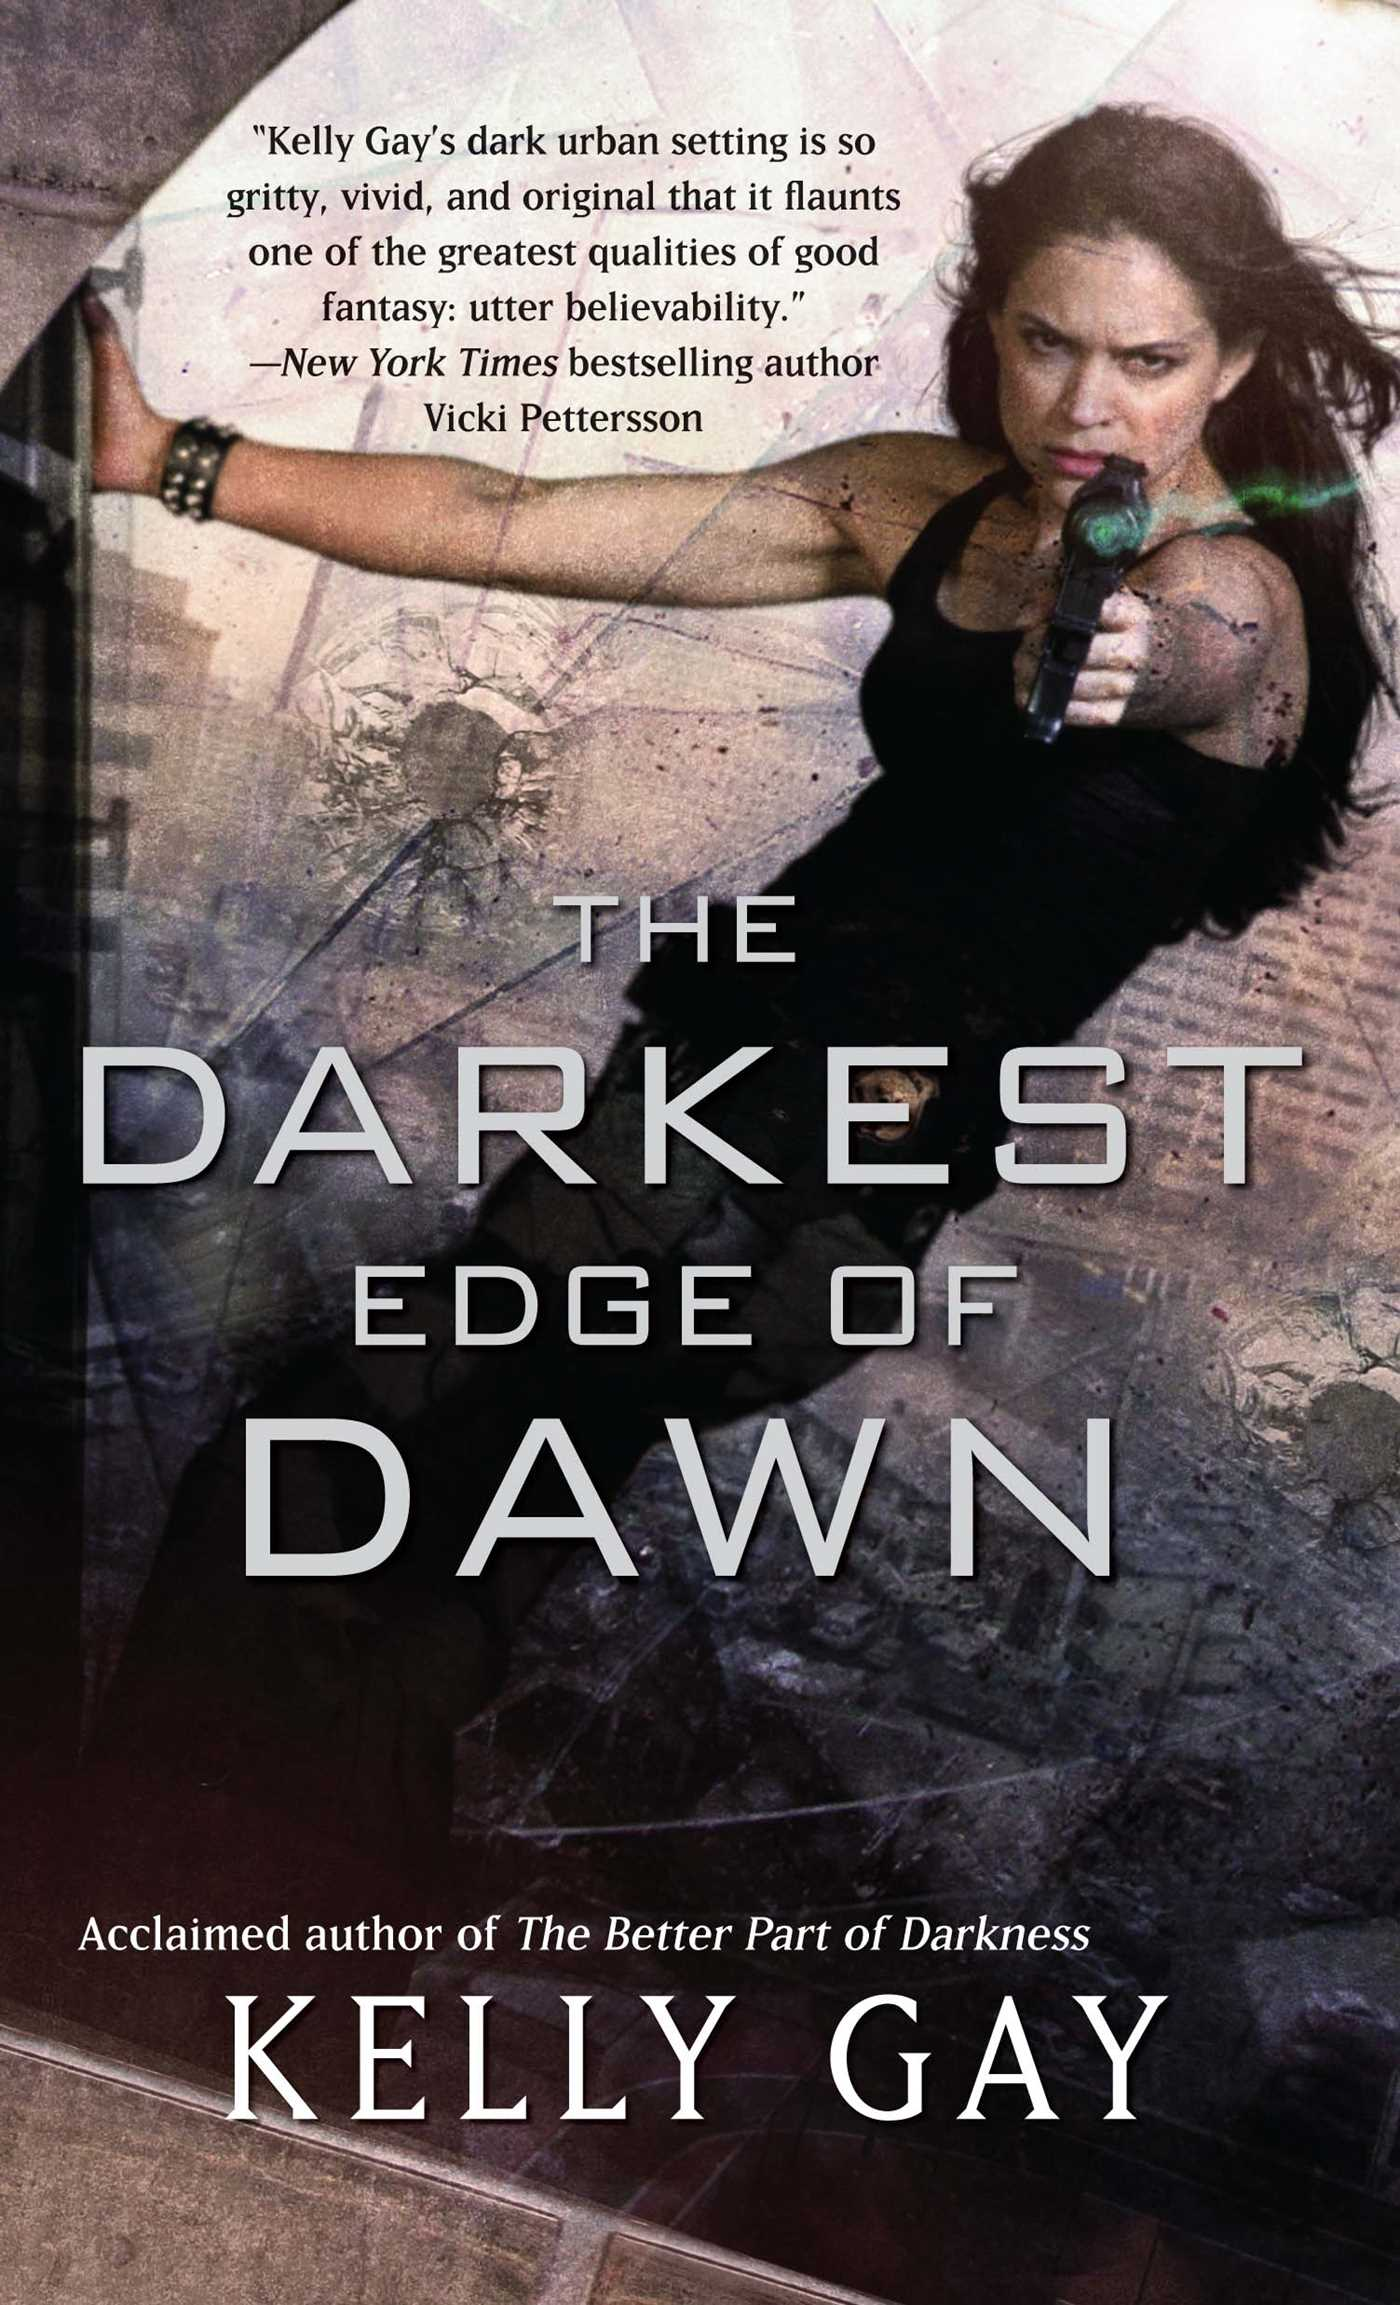 The darkest edge of dawn 9781439155479 hr